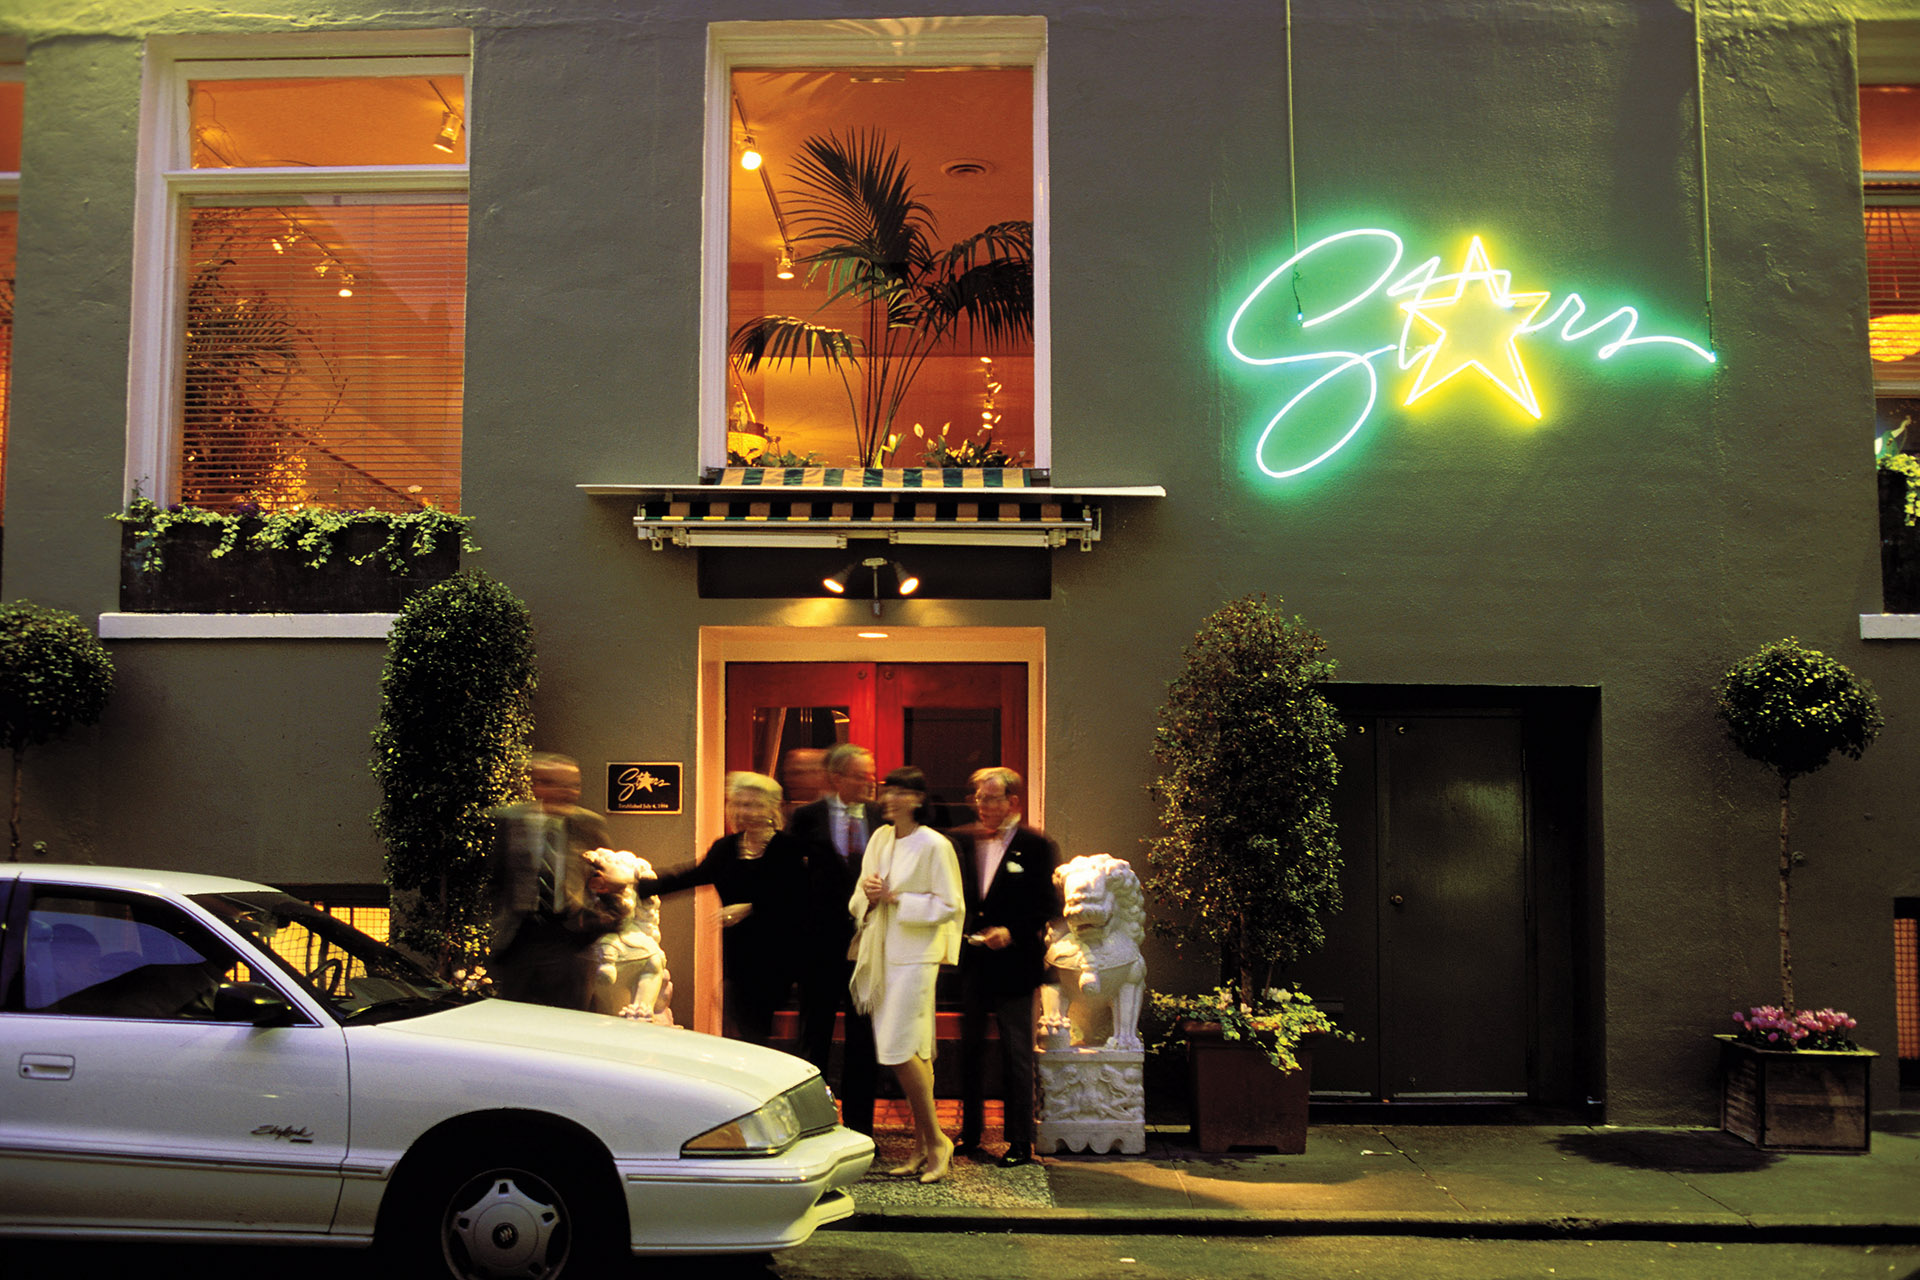 Stars Restaurant in San Francisco